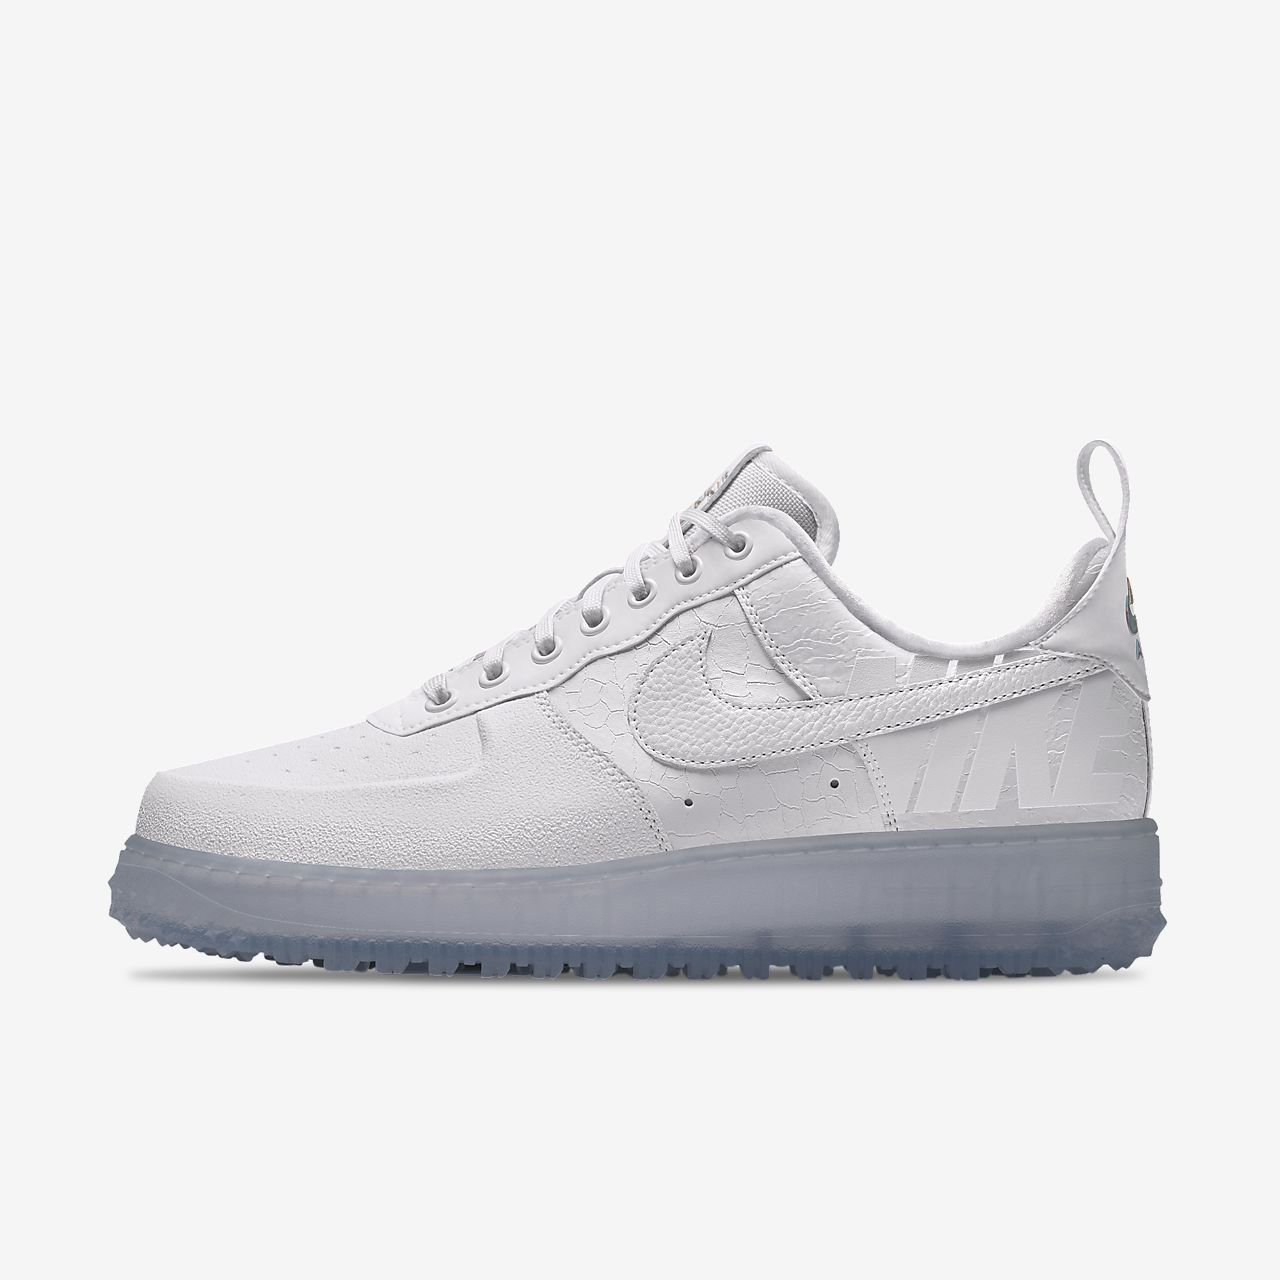 Nike Air Force 1 Low iD Winter White Men's Shoe